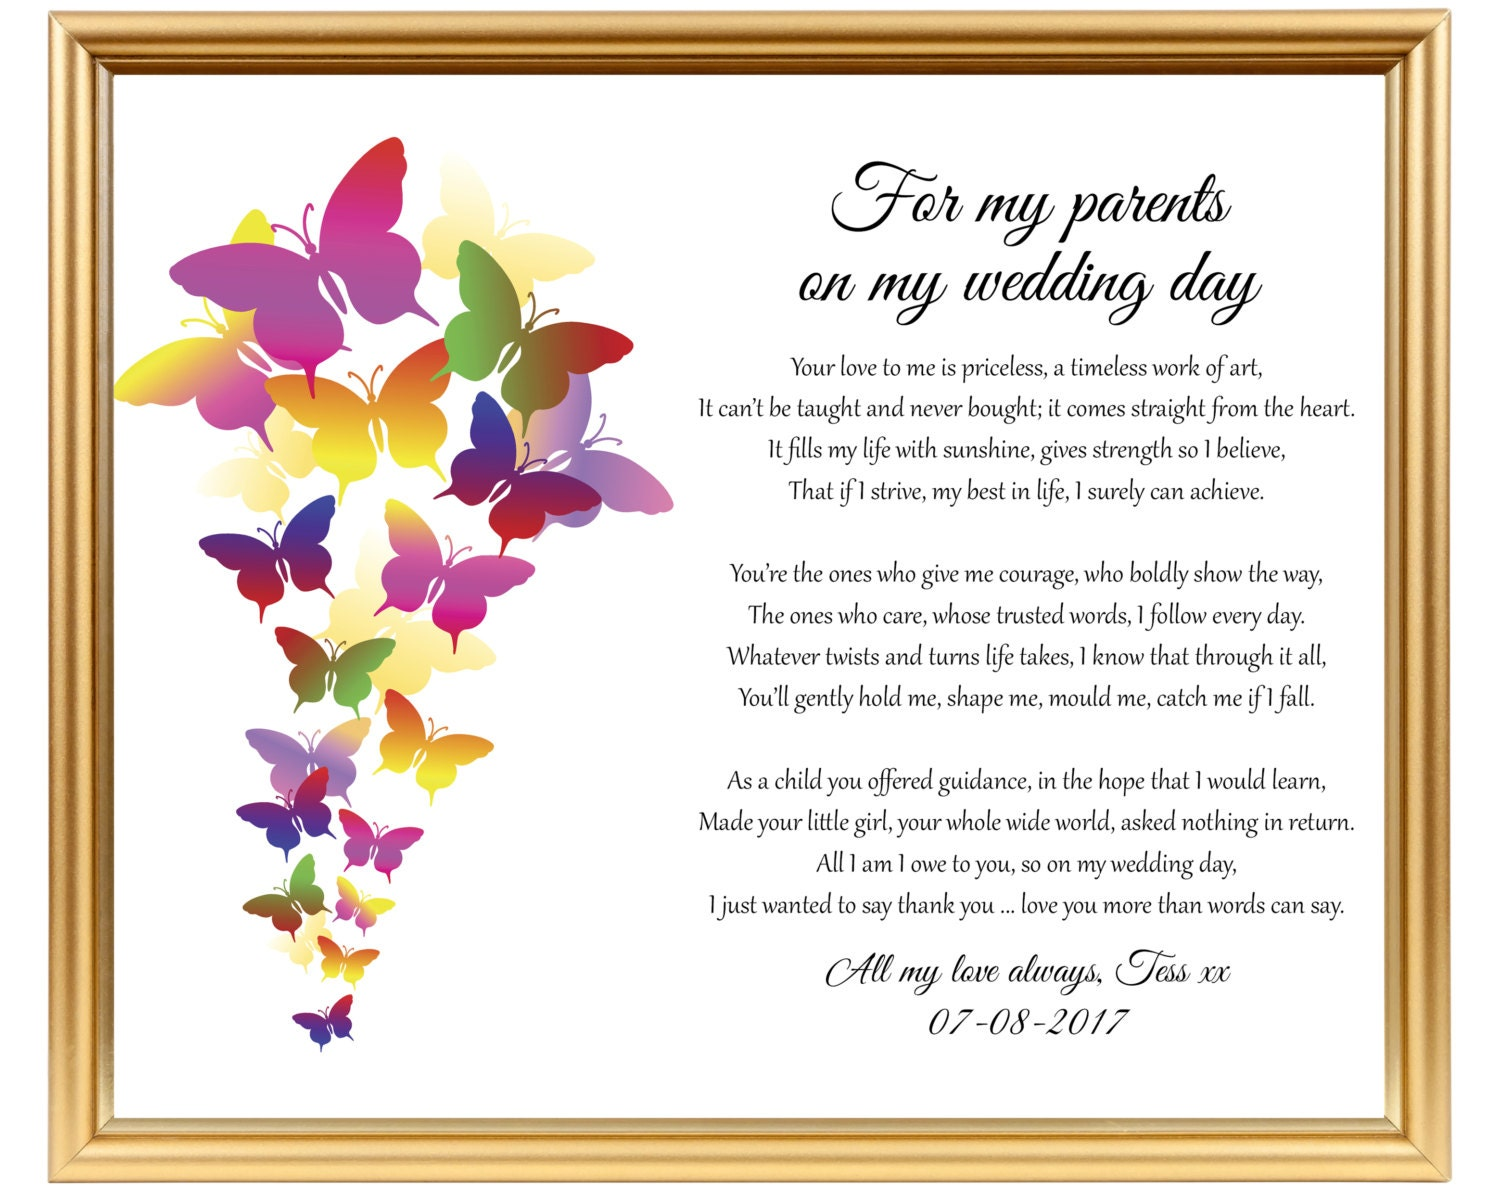 Wedding Gift For Bride Uk : Wedding gift poem for parents from Bride To Dad from Bride